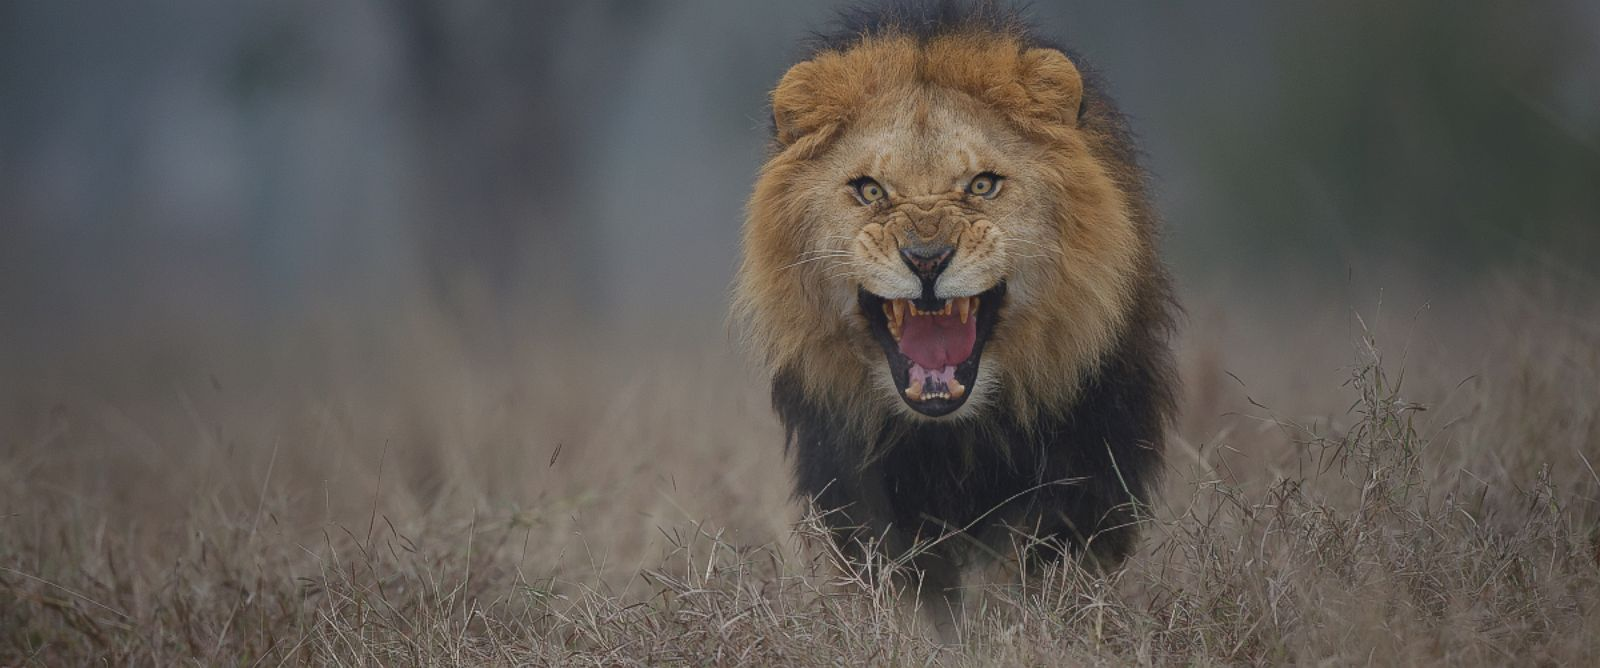 PHOTO: Photographer Atif Saeed said he captured this photo of an adult male lion while in a safari in Lahore, Pakistan on Jan. 24, 2012.